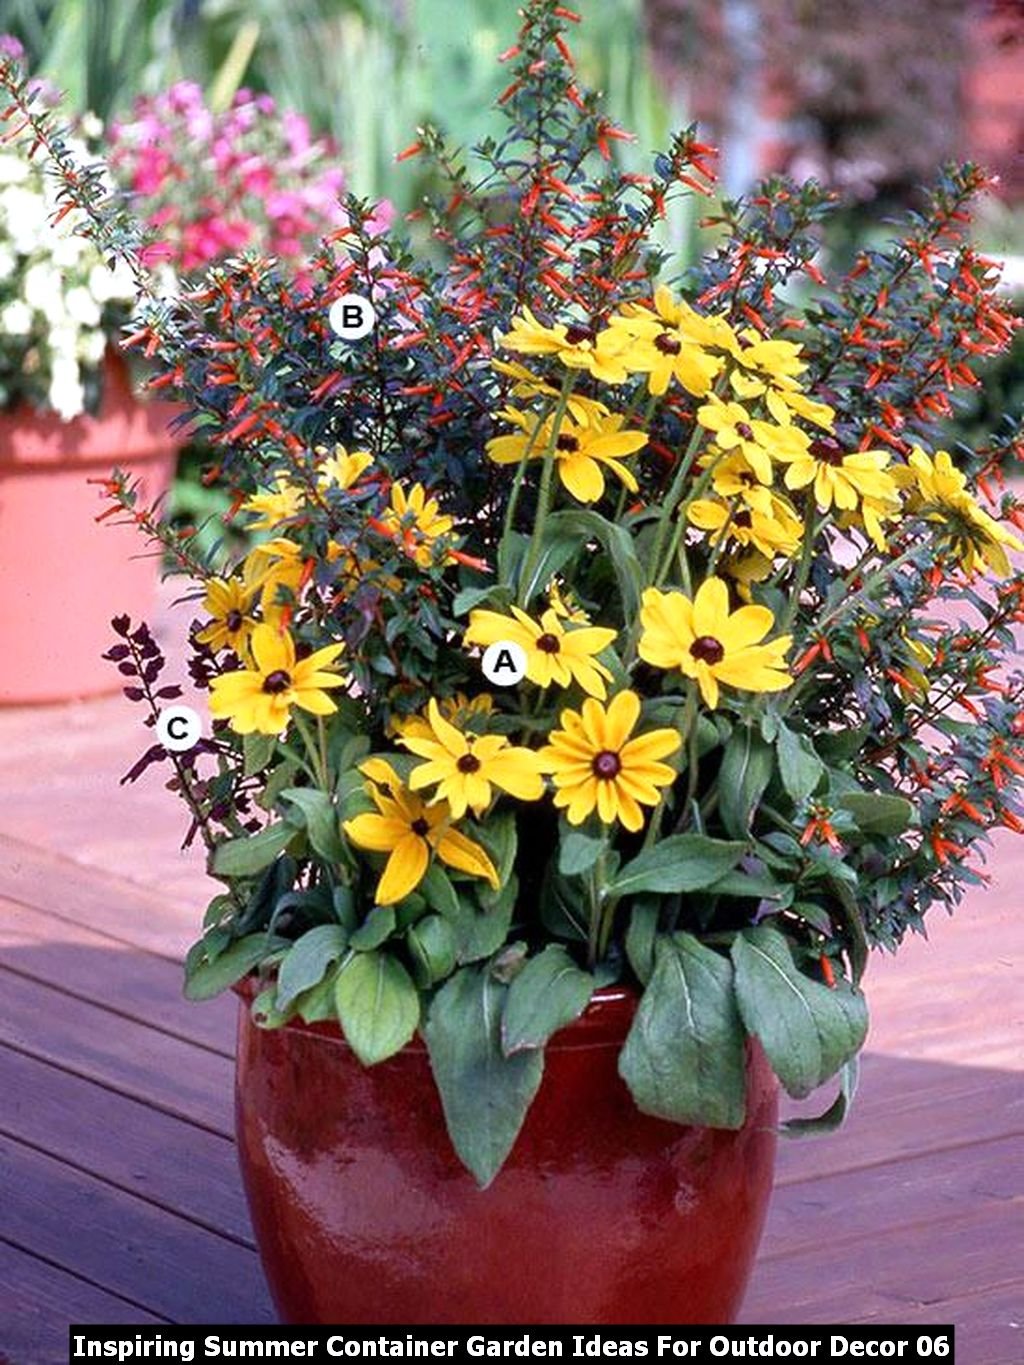 Inspiring Summer Container Garden Ideas For Outdoor Decor 06